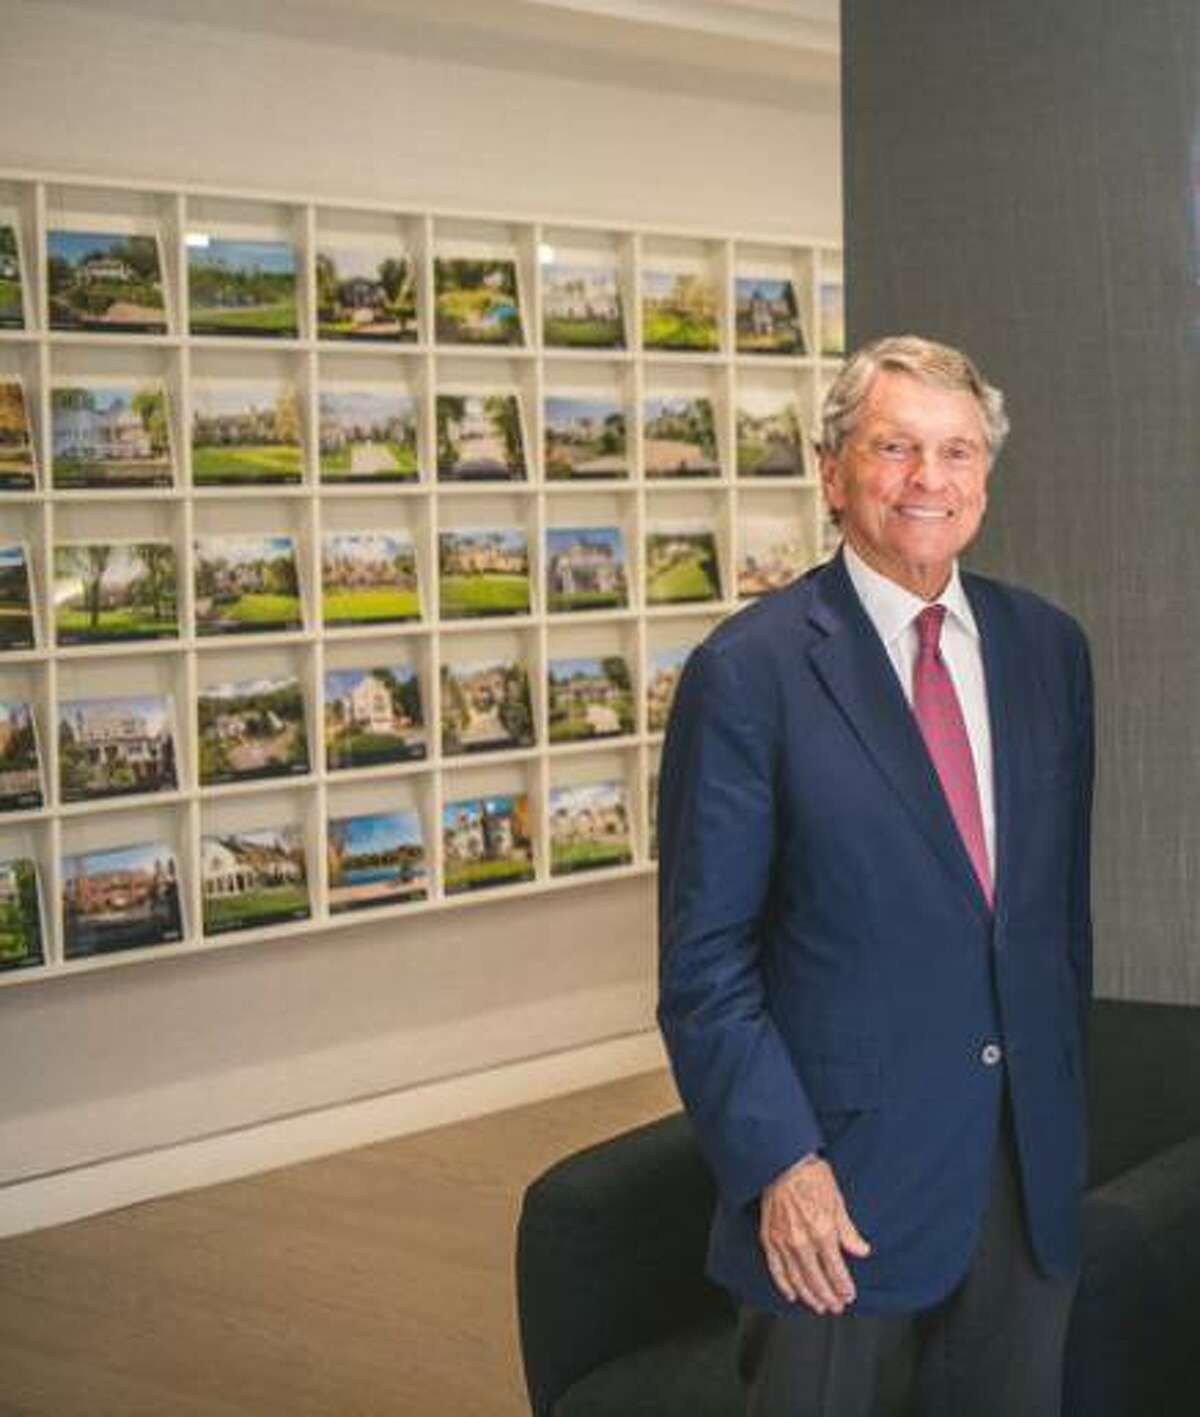 David Ogilvy, a longtime Greenwich real estate broker who most recently worked at Sotheby's International Realty, died Monday, Feb. 3, 2020 at 77 years old.